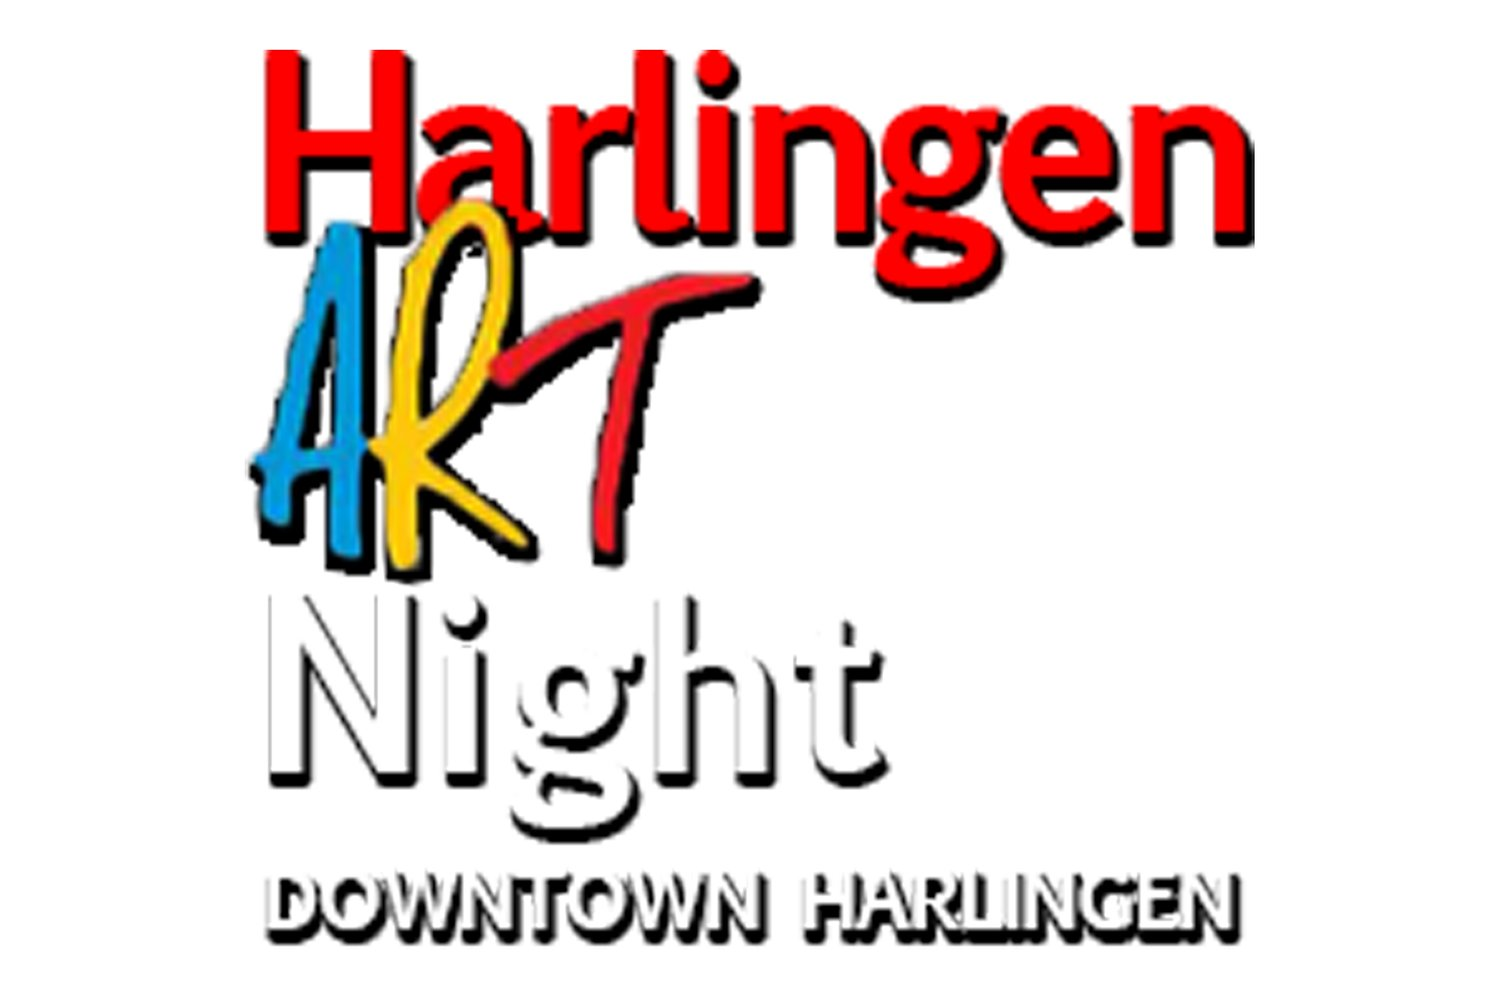 Harlingen Art Night